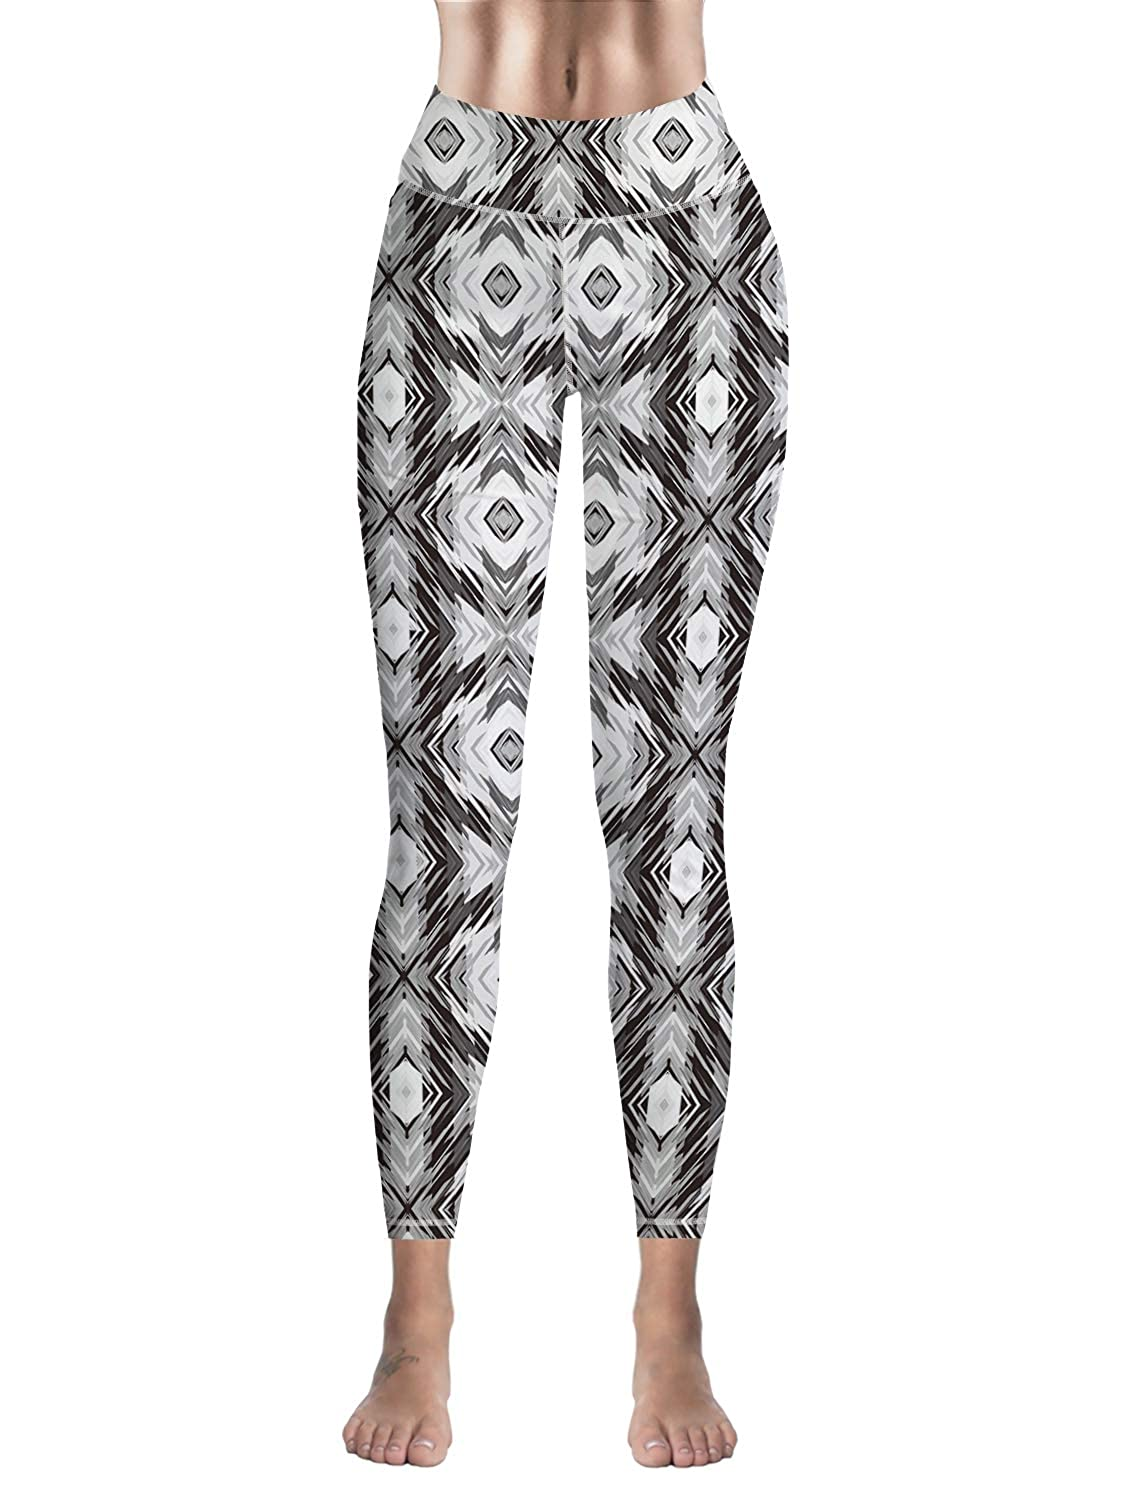 Bulingling Leggings for Women Yoga High-Waist Tummy Control Workout Pant Tights Abstact Ethnic Geometry